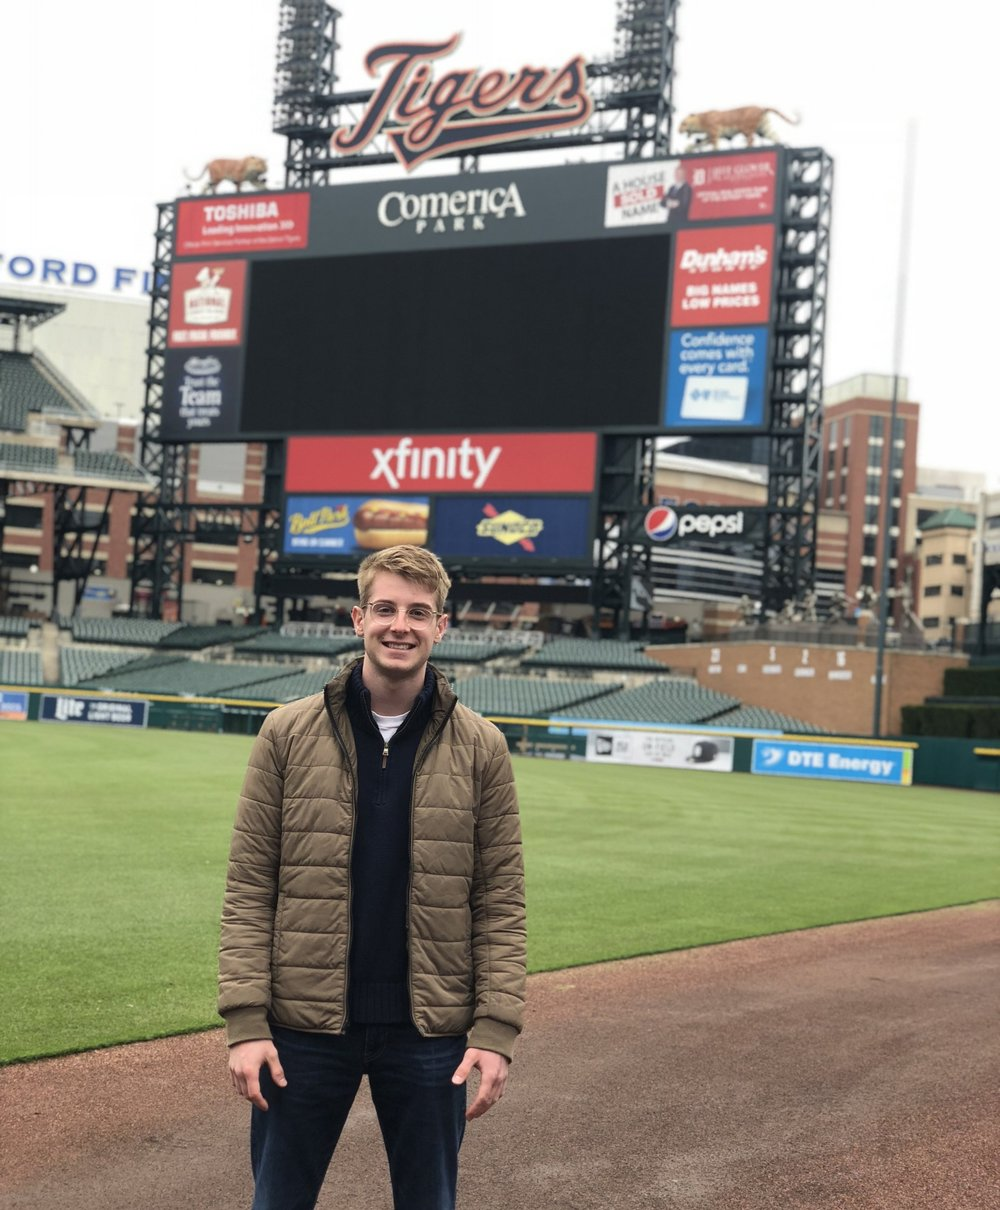 Cameron Podolski - Senior AdvisorFormer Director of MarketingCam is a senior minoring in marketing from Macomb, MI. Formerly the SMA Director of Marketing, he is excited to assist this years crew with his knowledge and experience. Over the summer, Cam will be employed by the Detroit Tigers on their Event Staff team. He roots for those Maize & Blue up north and the Detroit Red Wings.